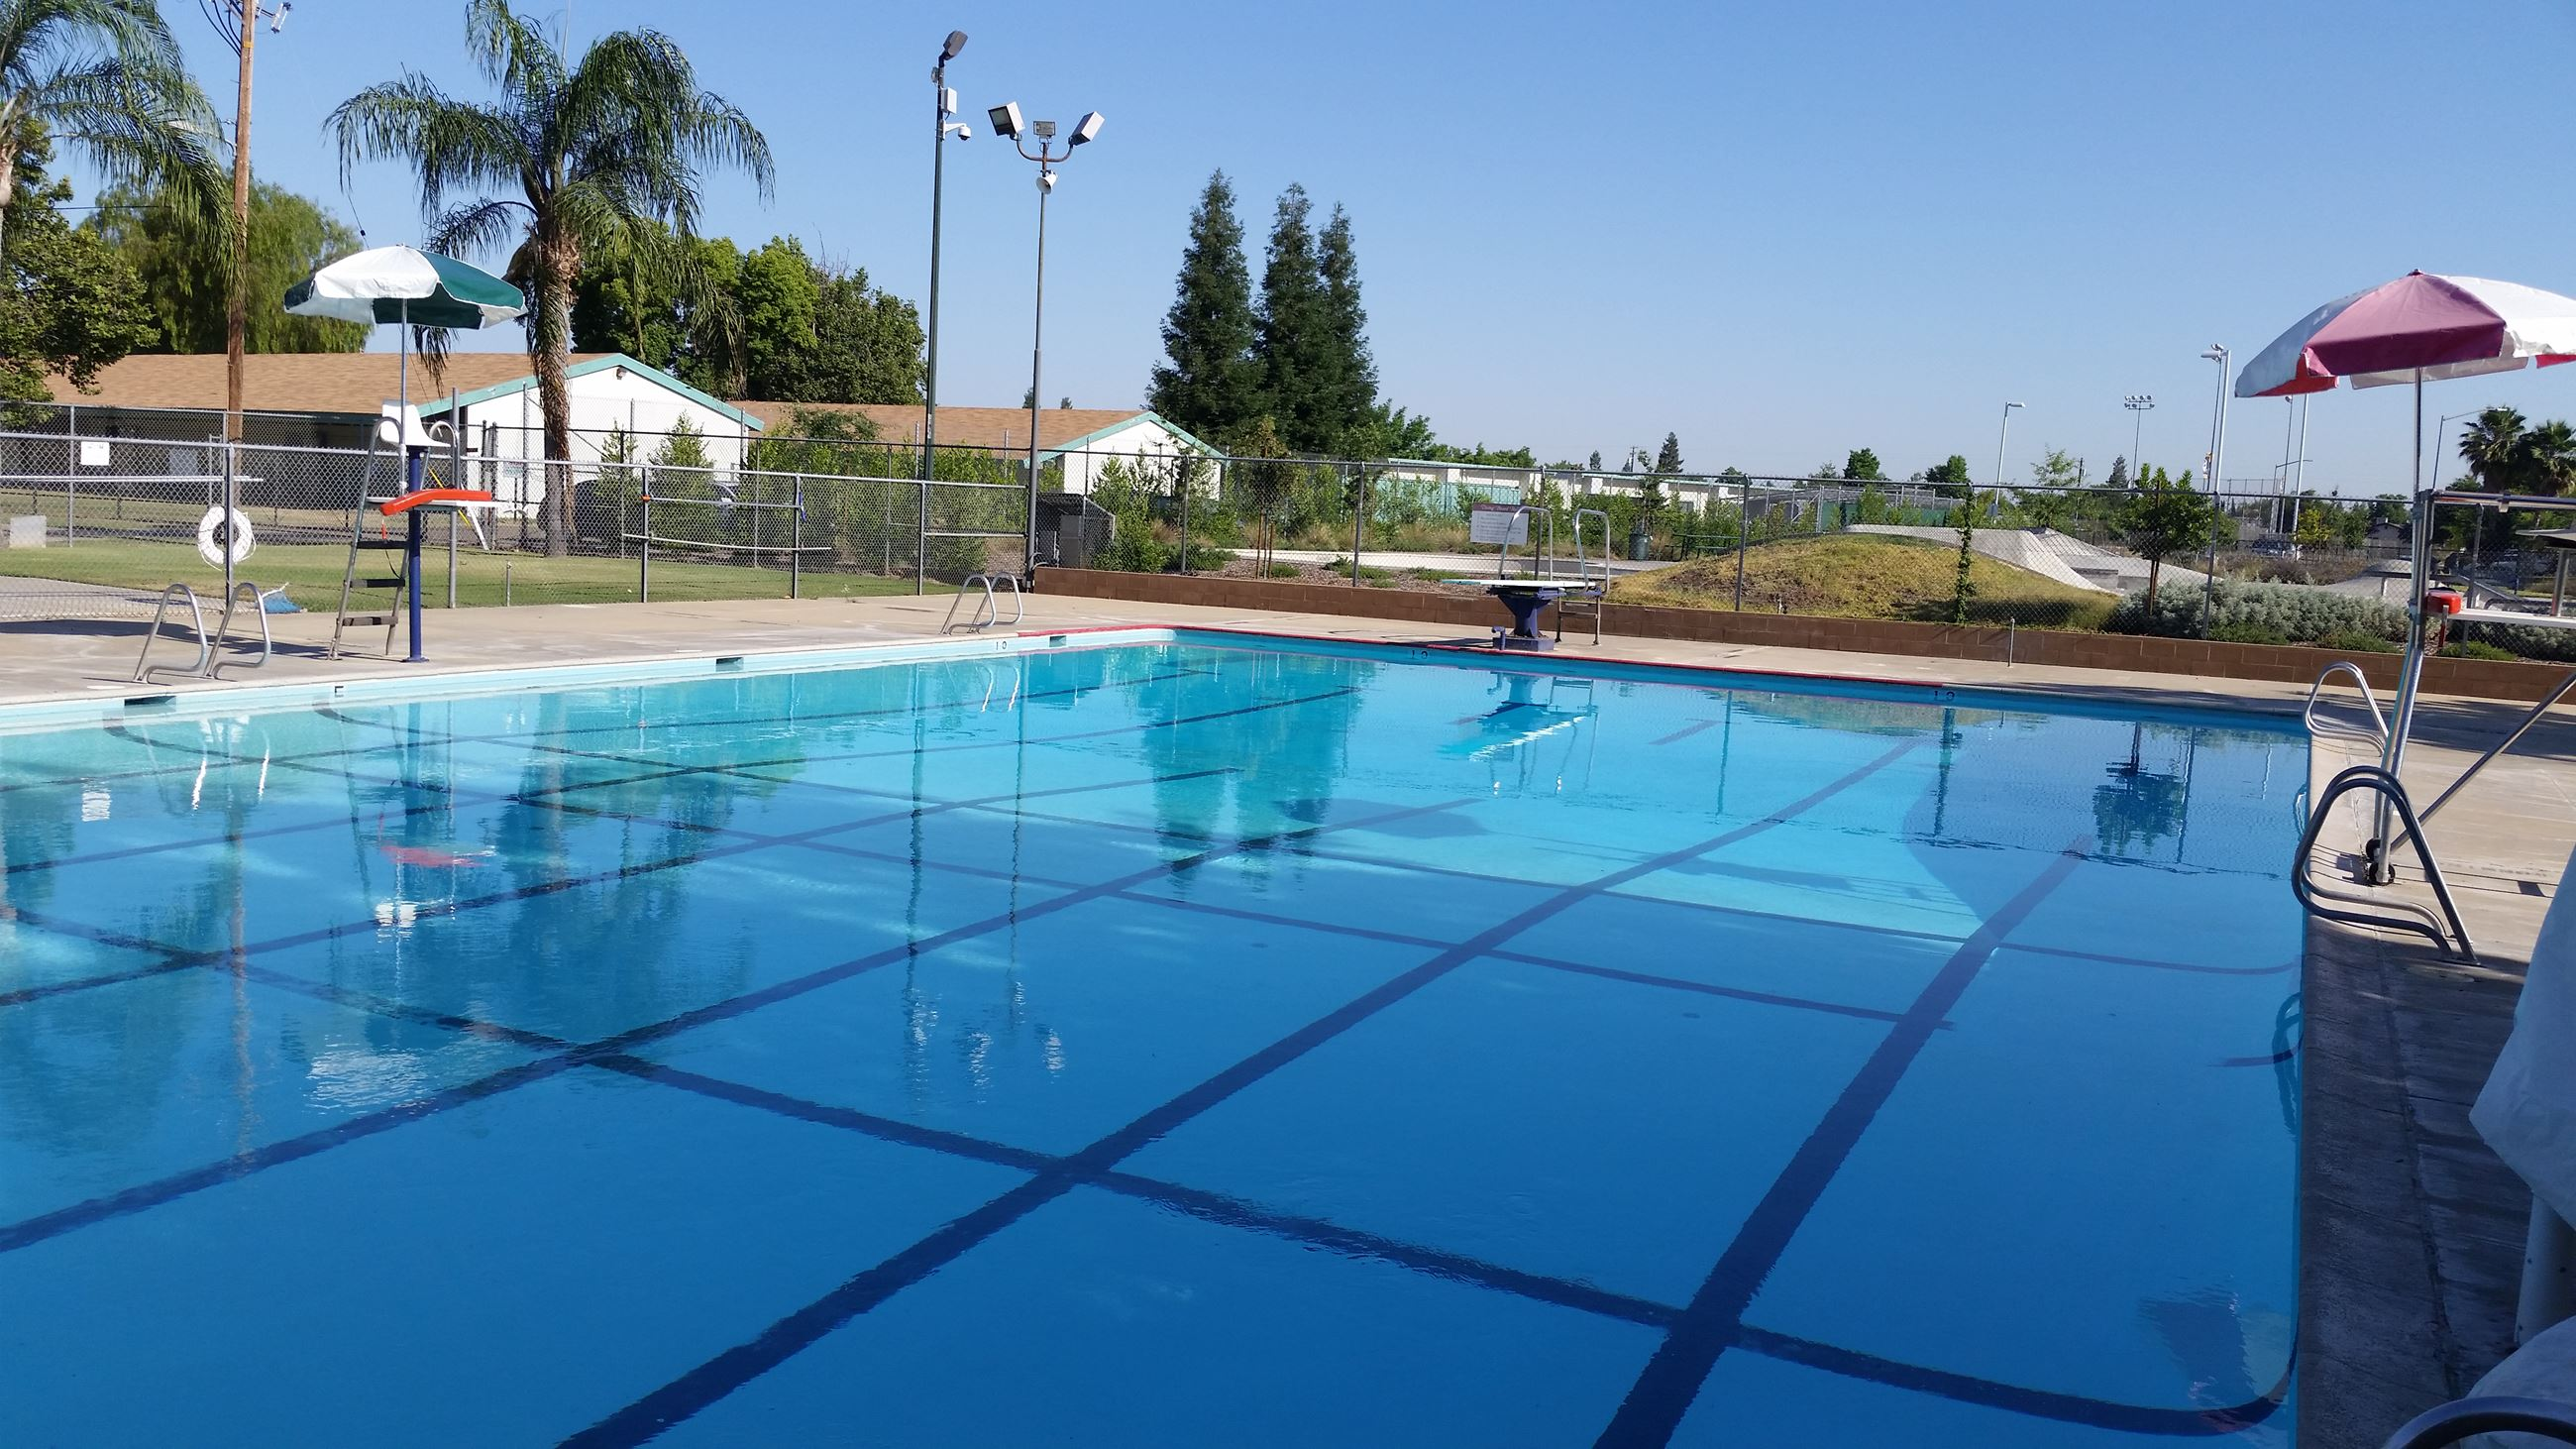 Main Pool at  Sanger Aquatic Complex